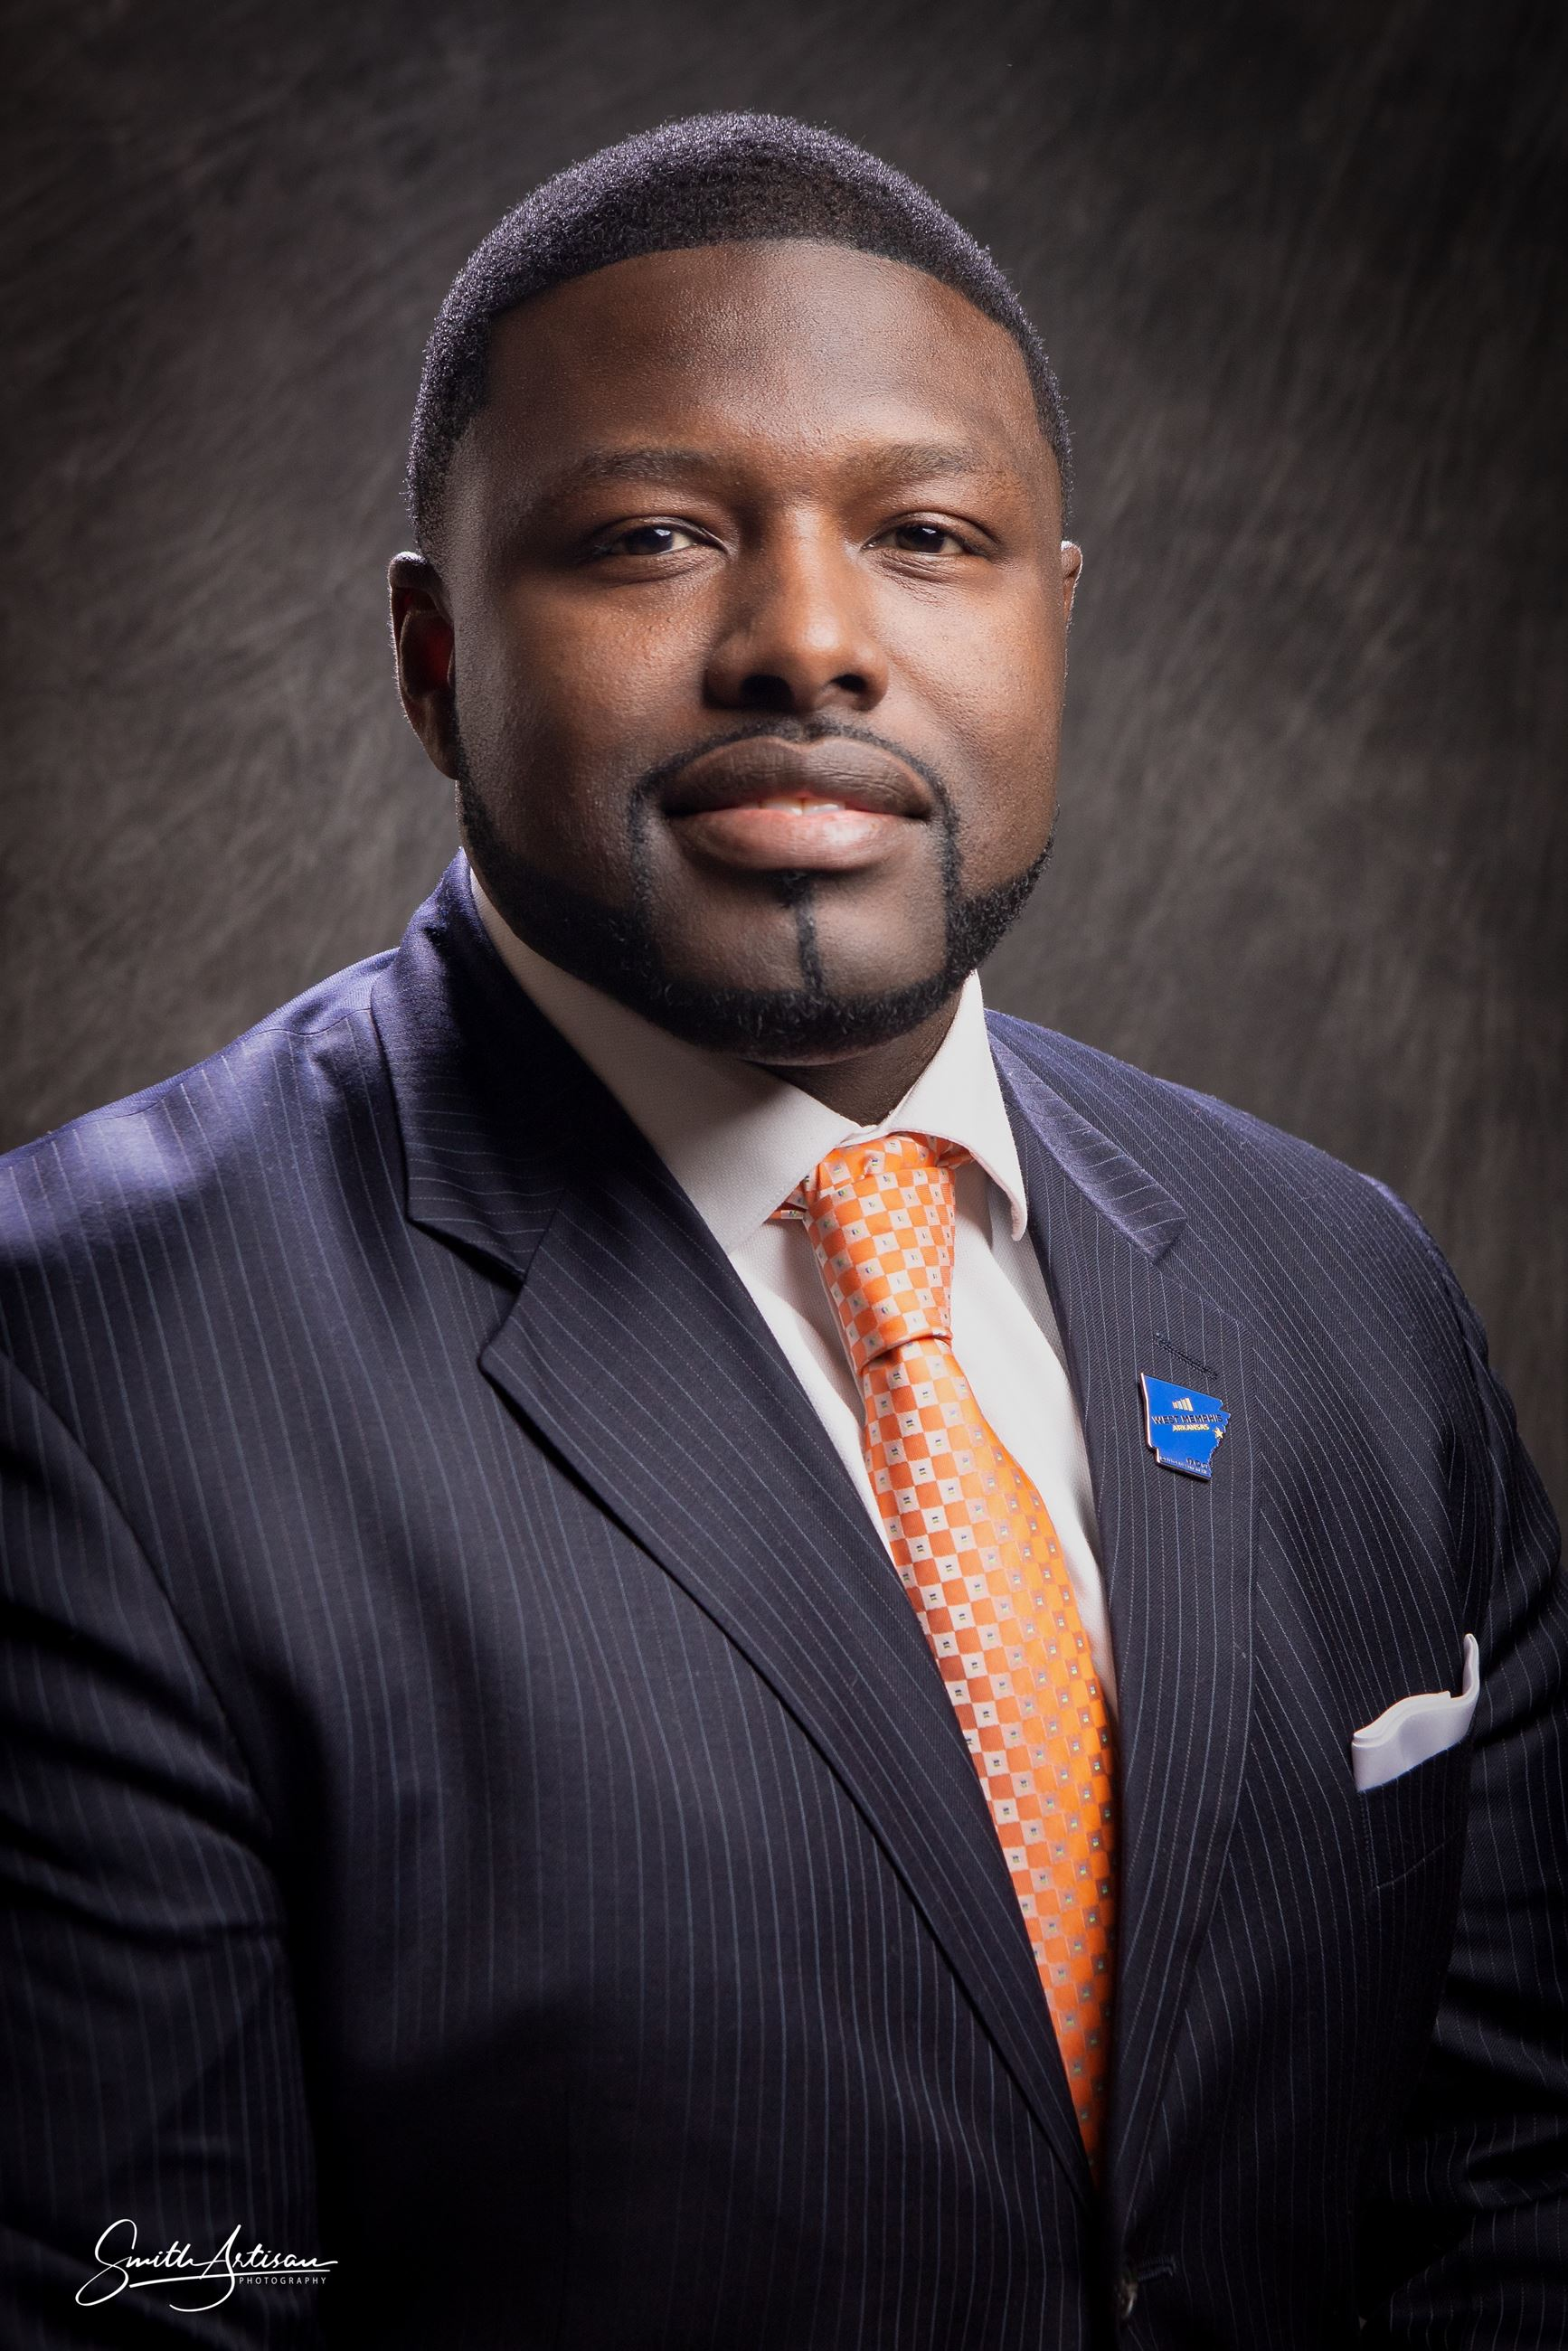 West Memphis Mayor Marco McClendon Portrait